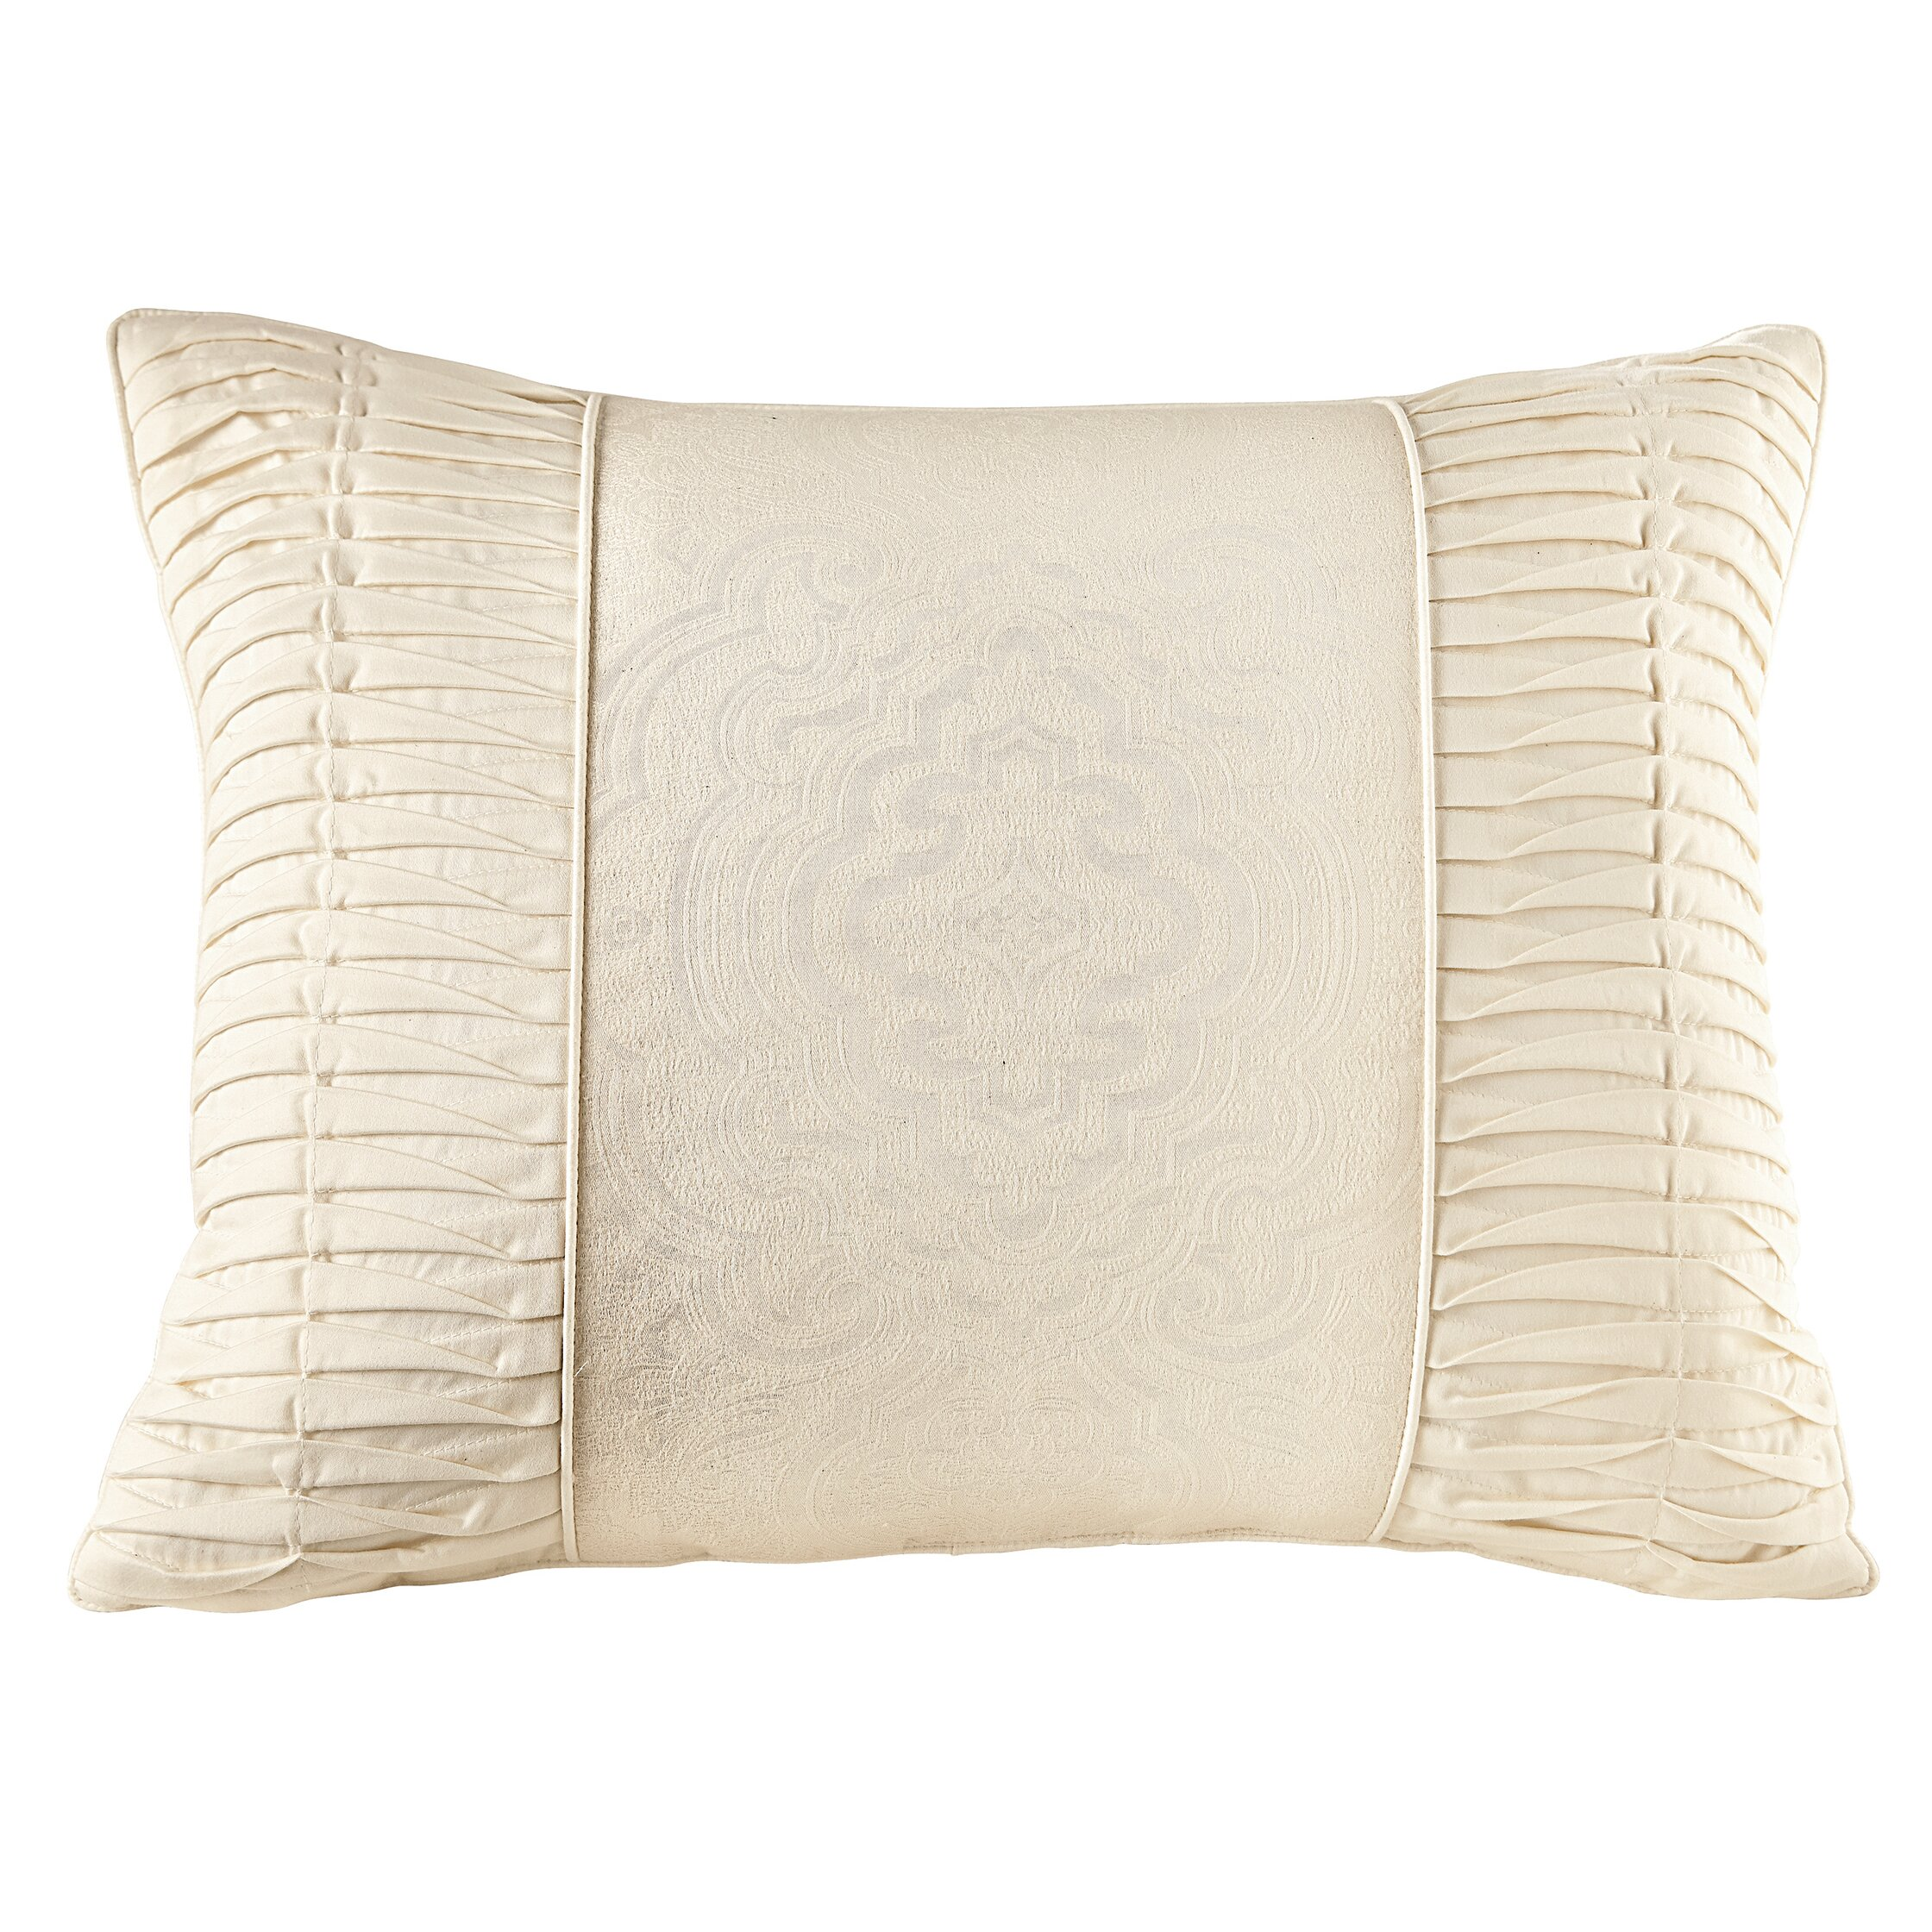 Jacquard Throw Pillows : House of Hampton Jagger Cotton Naturals Jacquard Throw Pillow & Reviews Wayfair